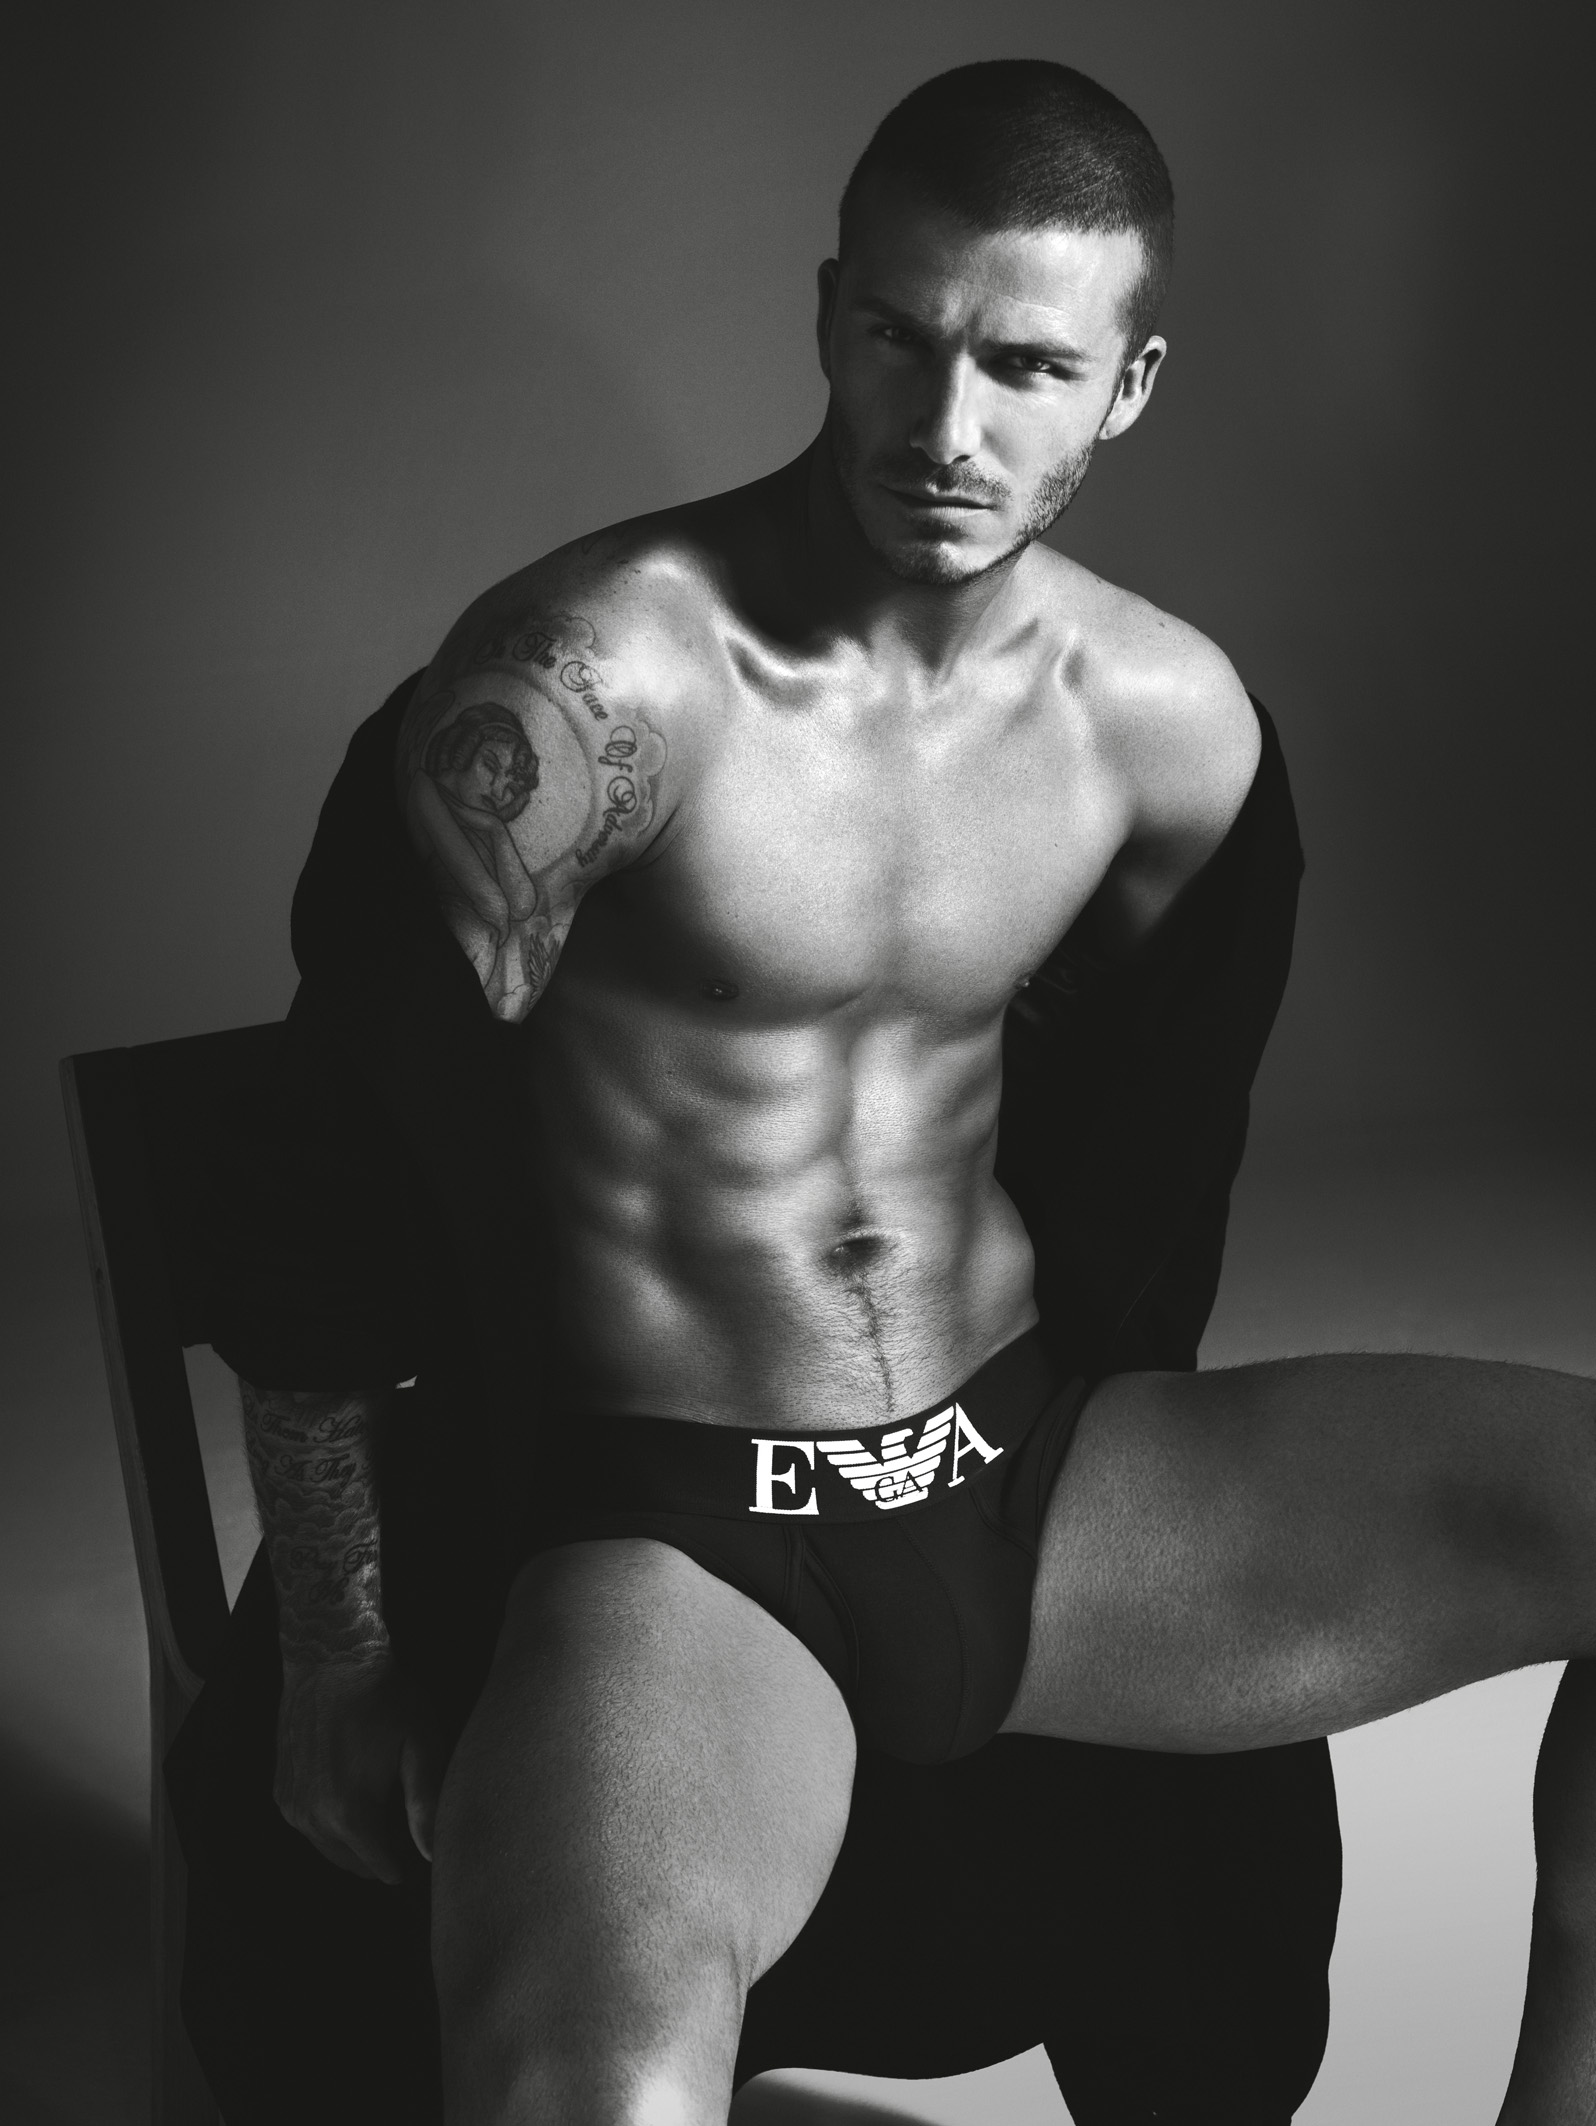 David Beckham for Giorgio Armani | SexyAdvertisement's Blog